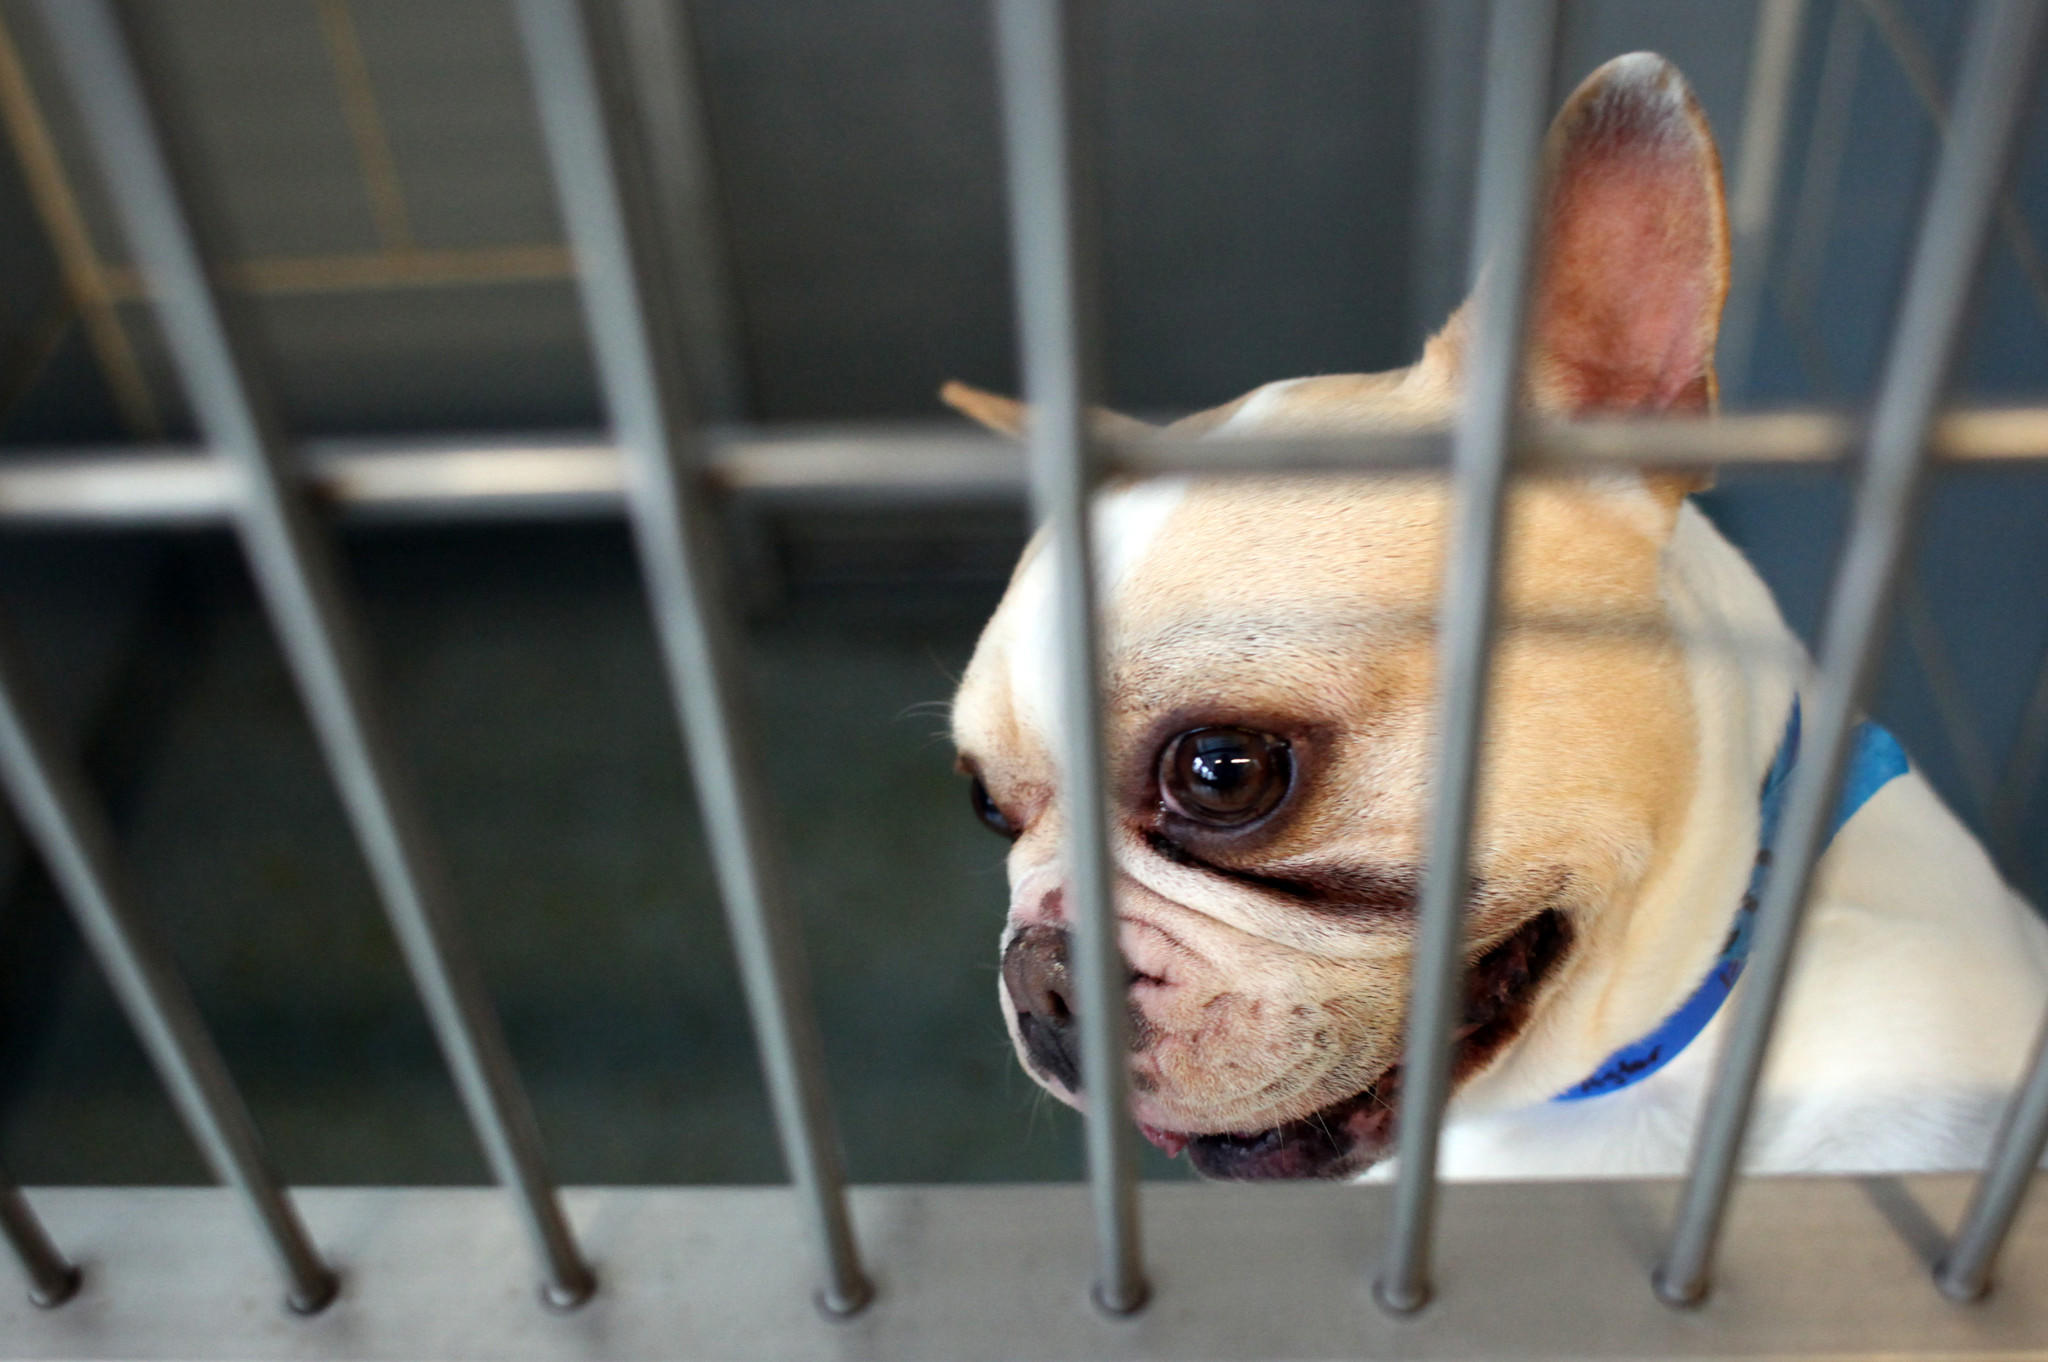 Astor, a French bulldog, is one of the 27 dogs that arrived in Chicago after being rescued from three puppy mills in Missouri at the Anti-Cruelty Society on Thursday March 24, 2011.